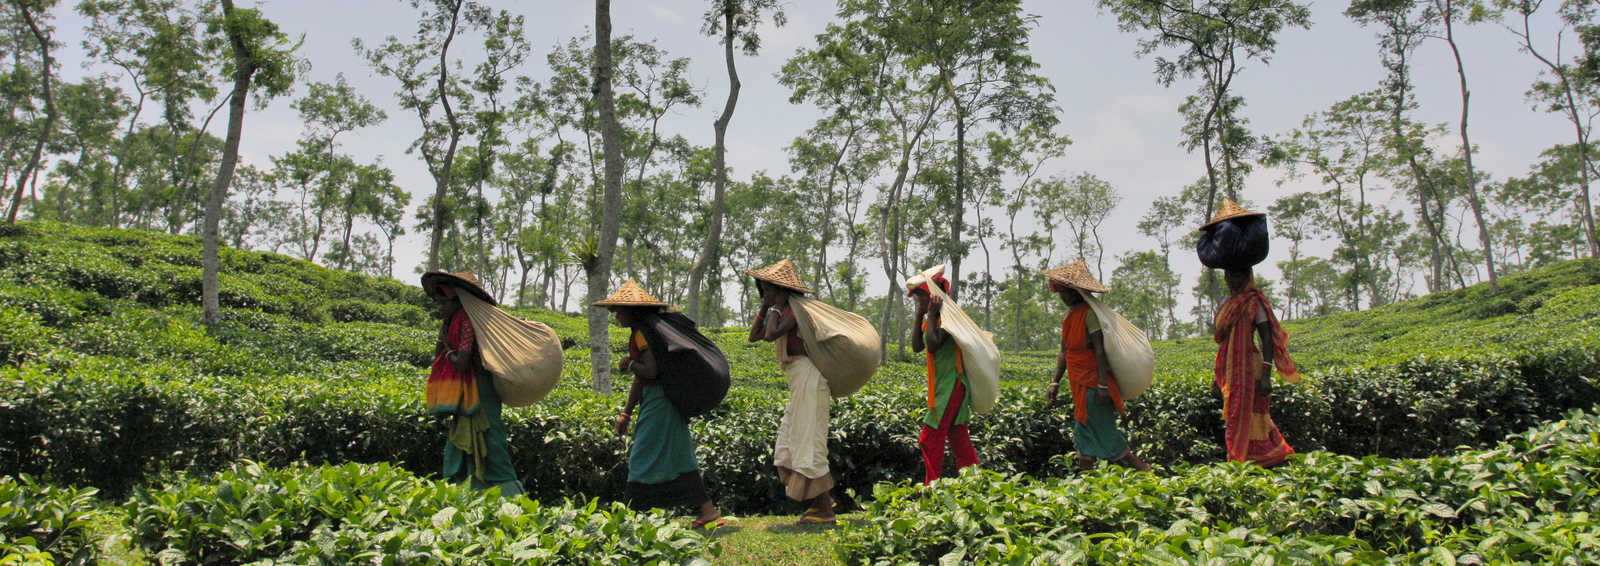 A group of women carrying tea leaves on their backs in a tea garden in Srimangal in Moulvibazar district.